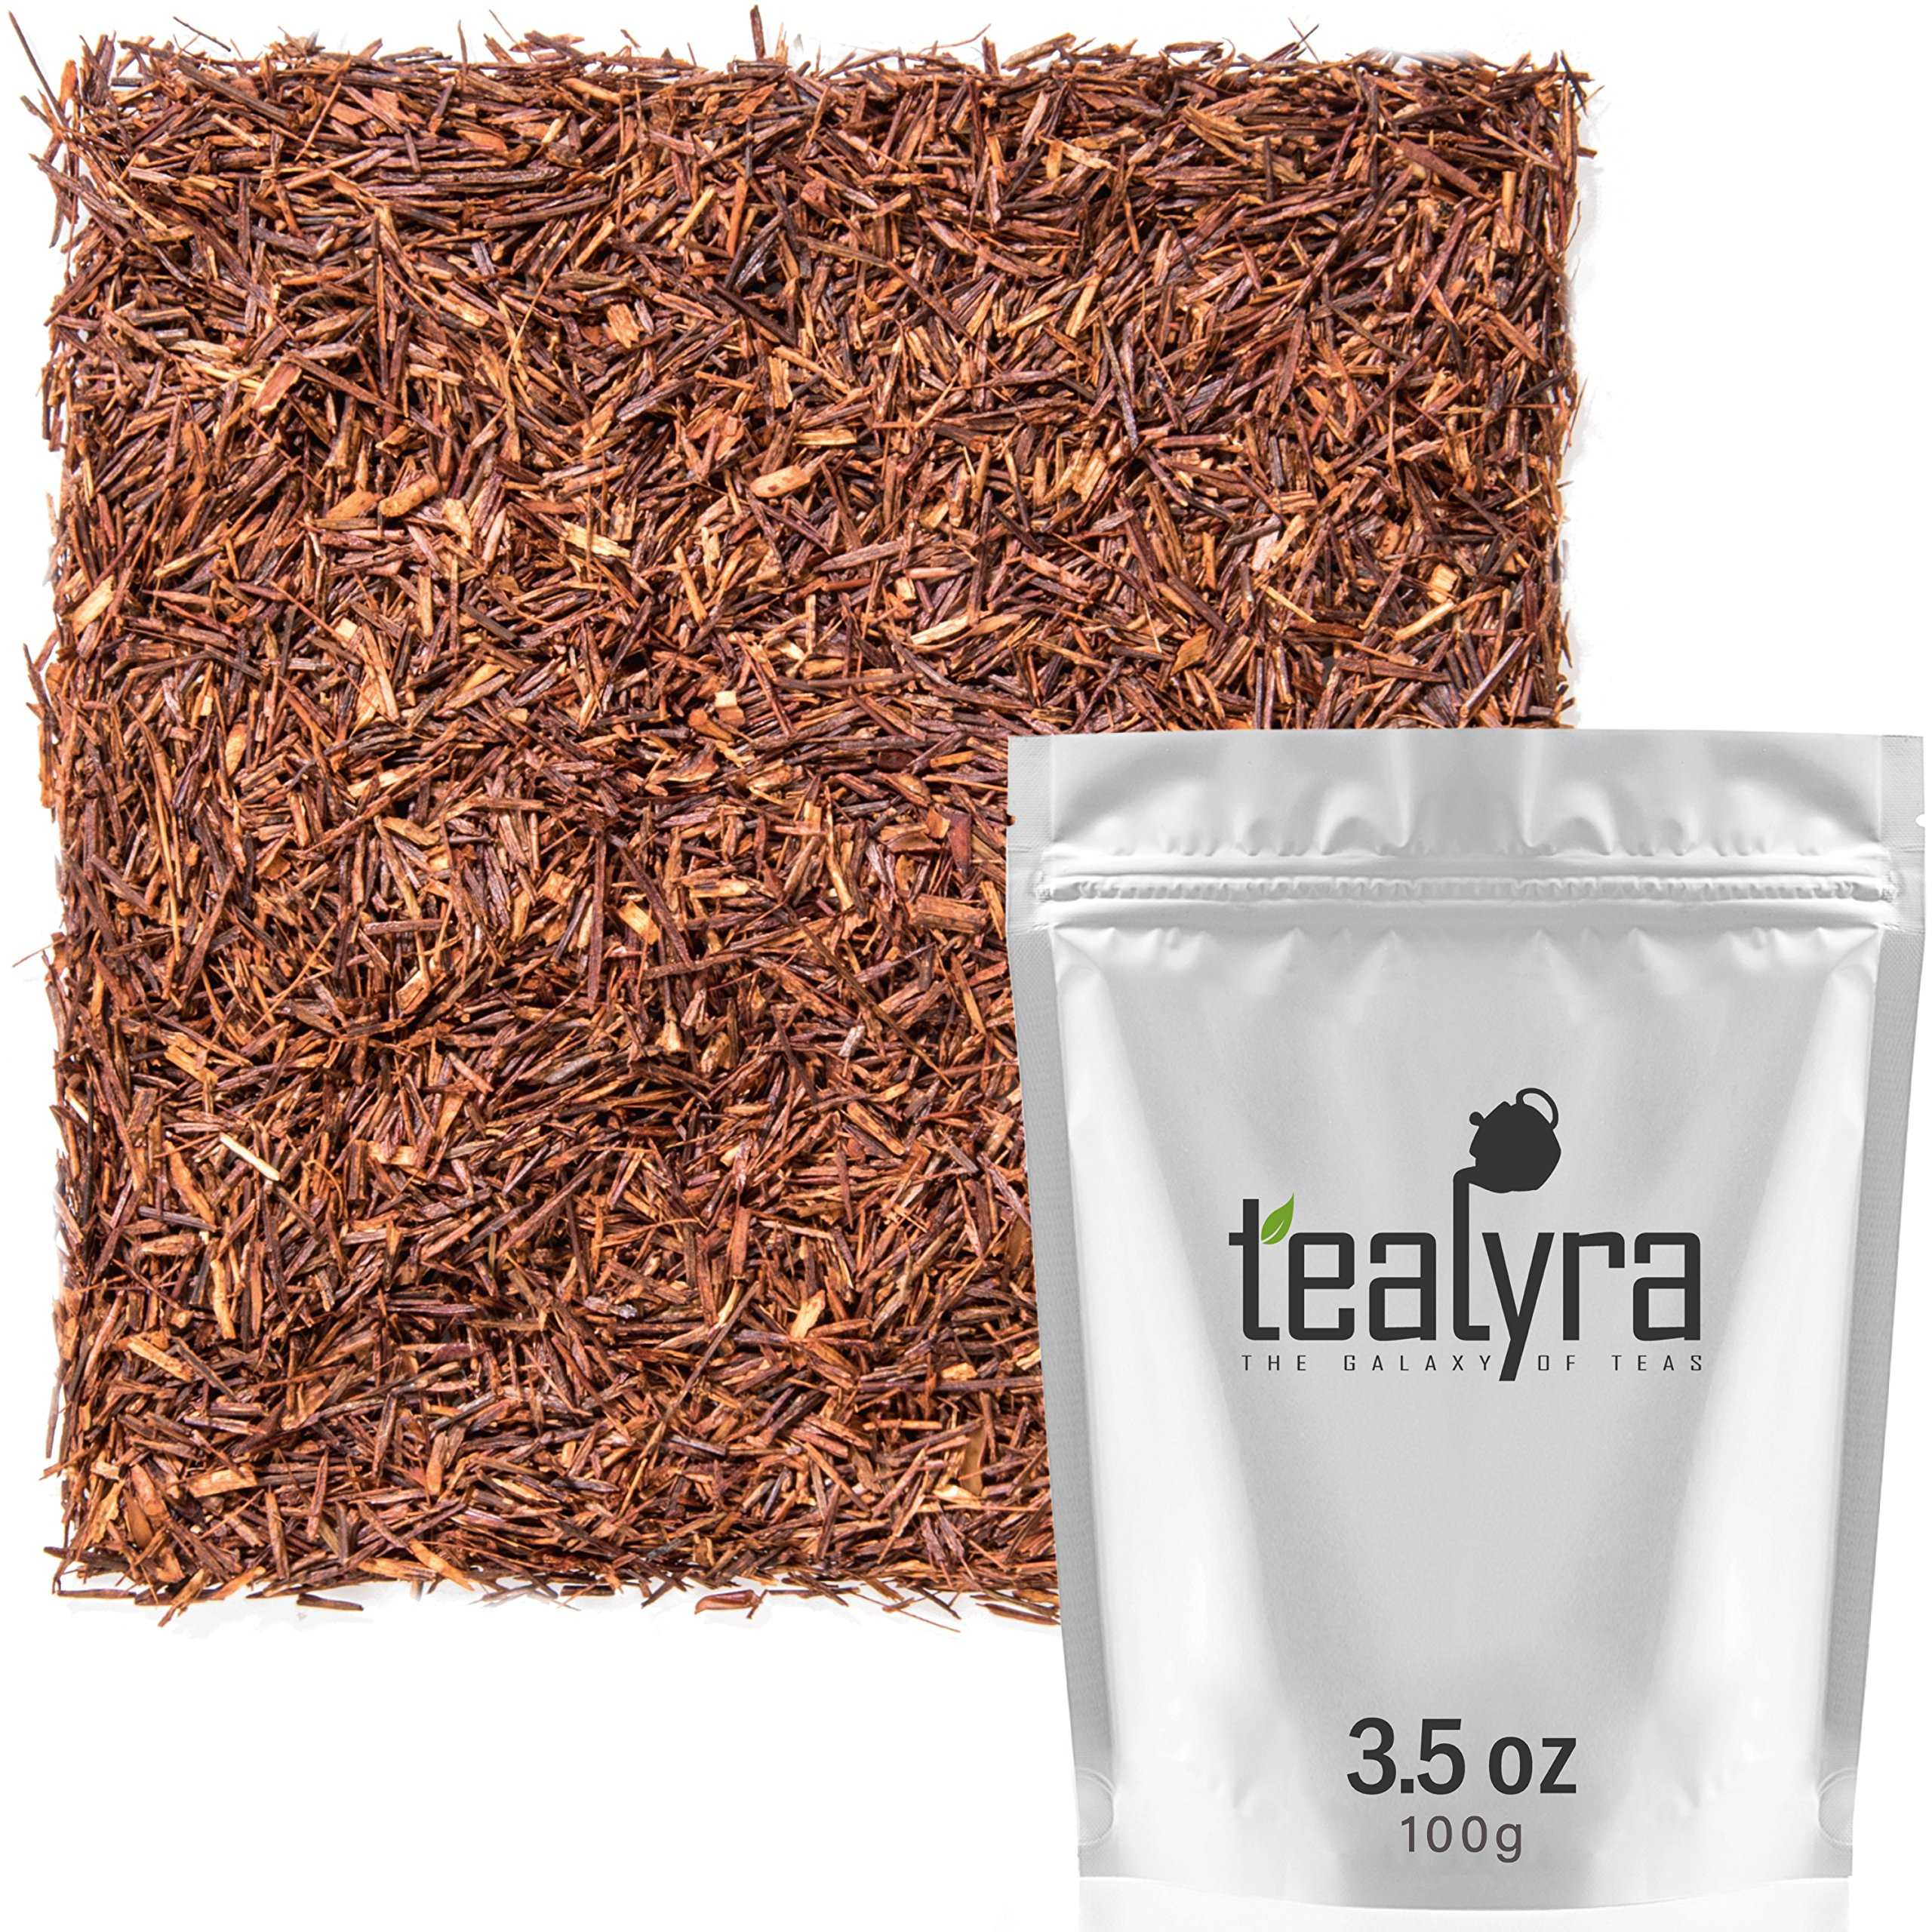 Tealyra - Pure Rooibos Herbal Tea - African Red Bush Loose Leaf Tea - High in Antioxidants - Relax - Detox - Low Blood Pressure - Kids Welcome - Caffeine-Free - Organically Grown - 100g (3.5-ounce) by Tealyra